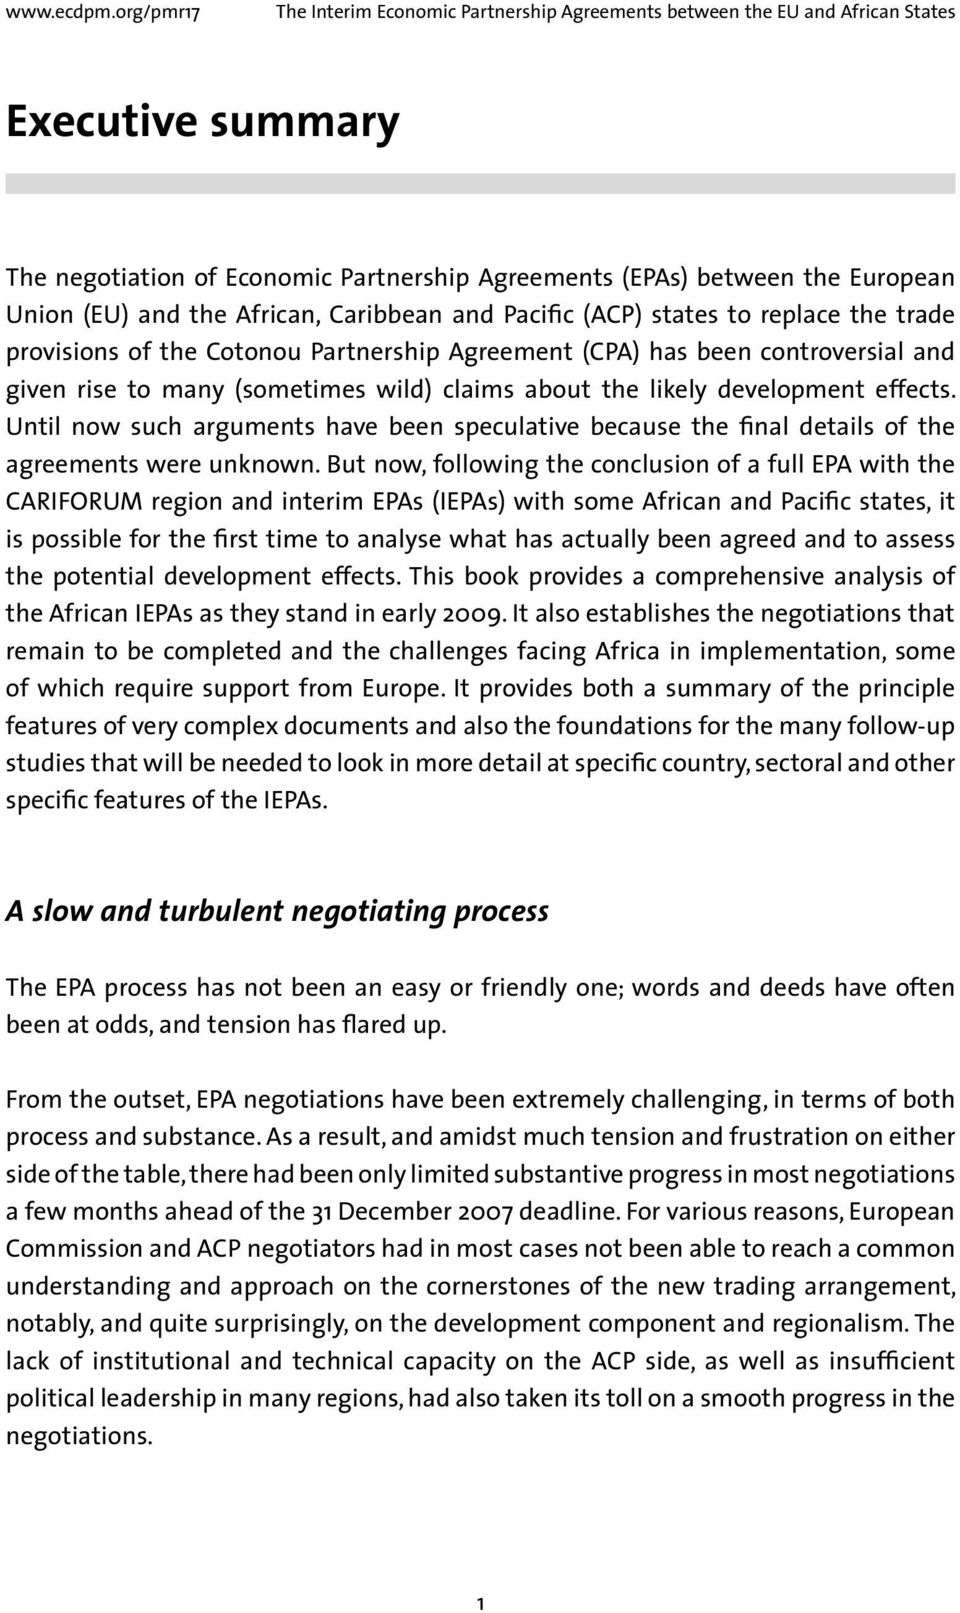 The Interim Economic Partnership Agreements Between The Eu And